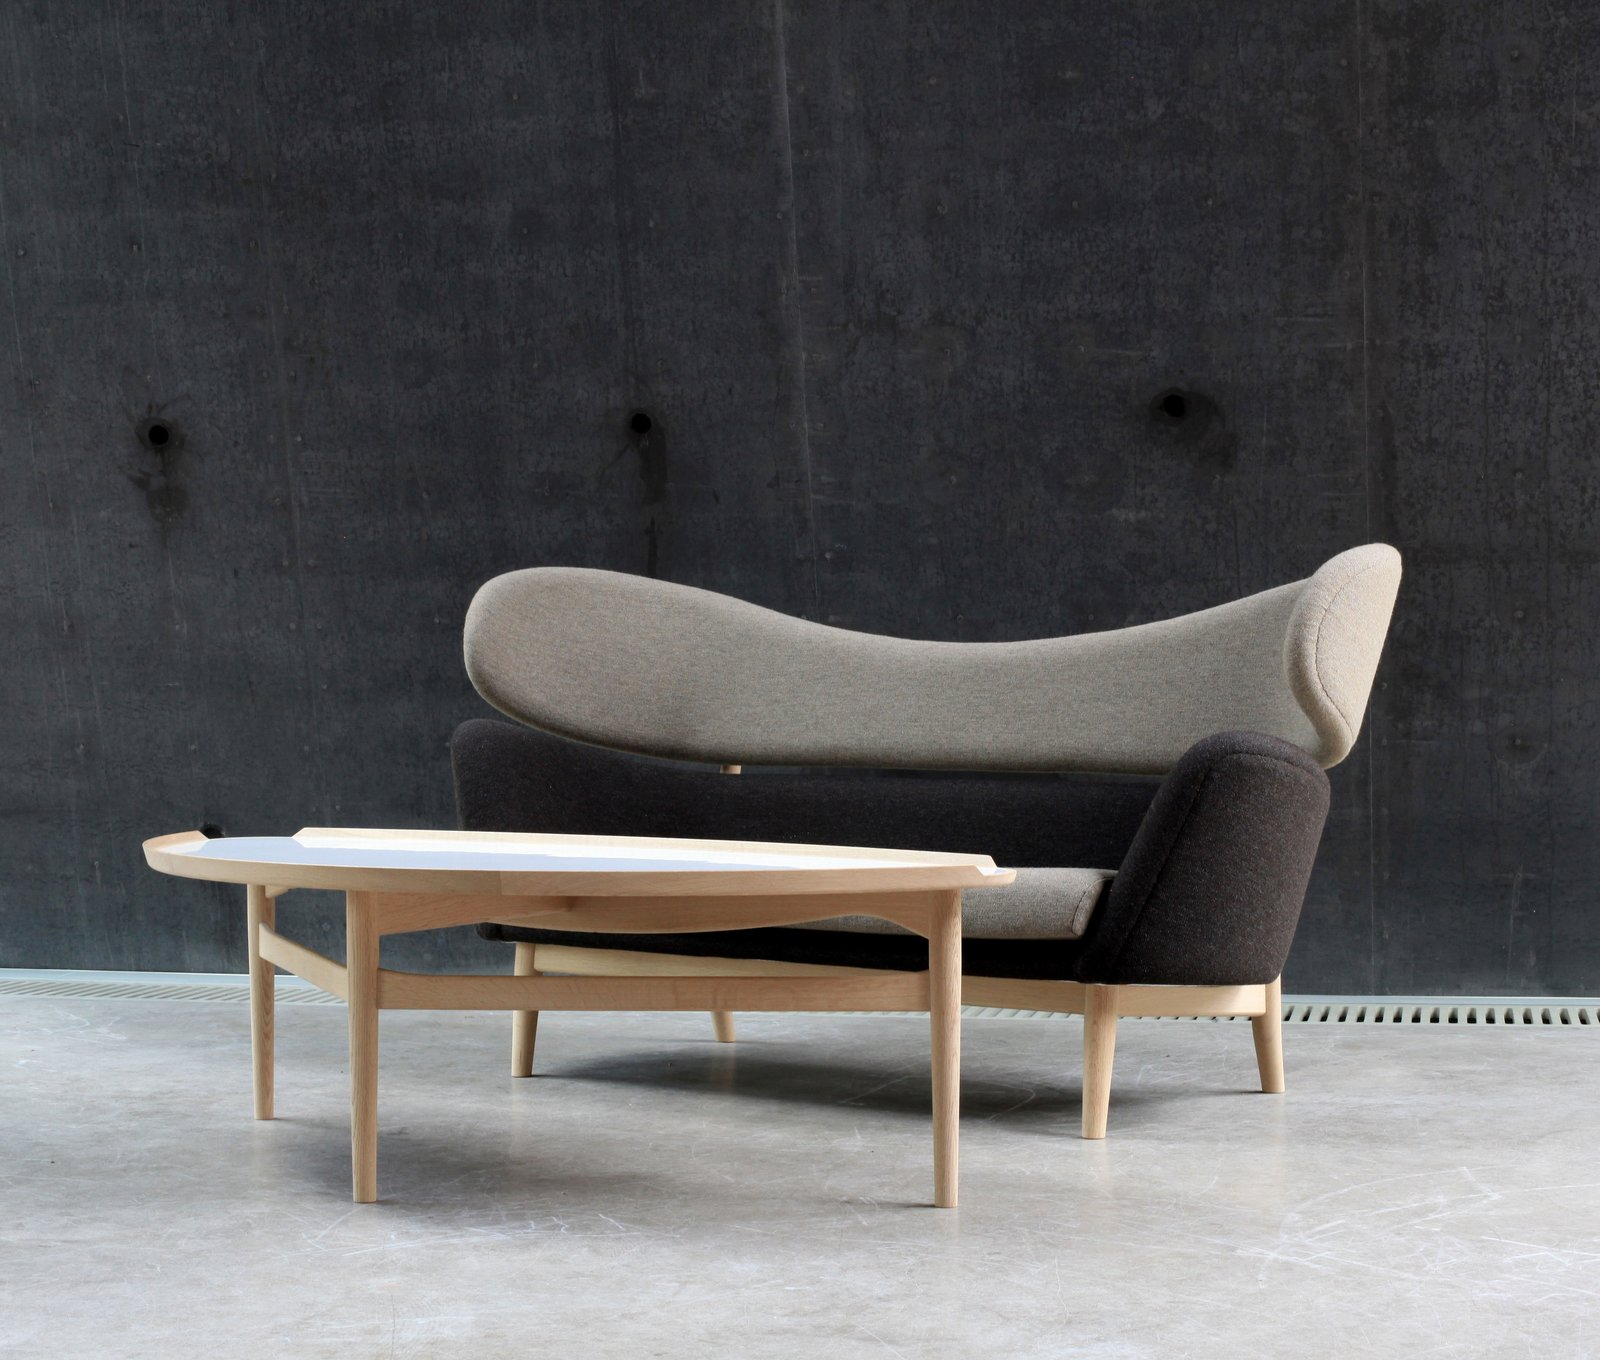 Finn Juhl Baker Sofa By Design Within Reach   Dwell